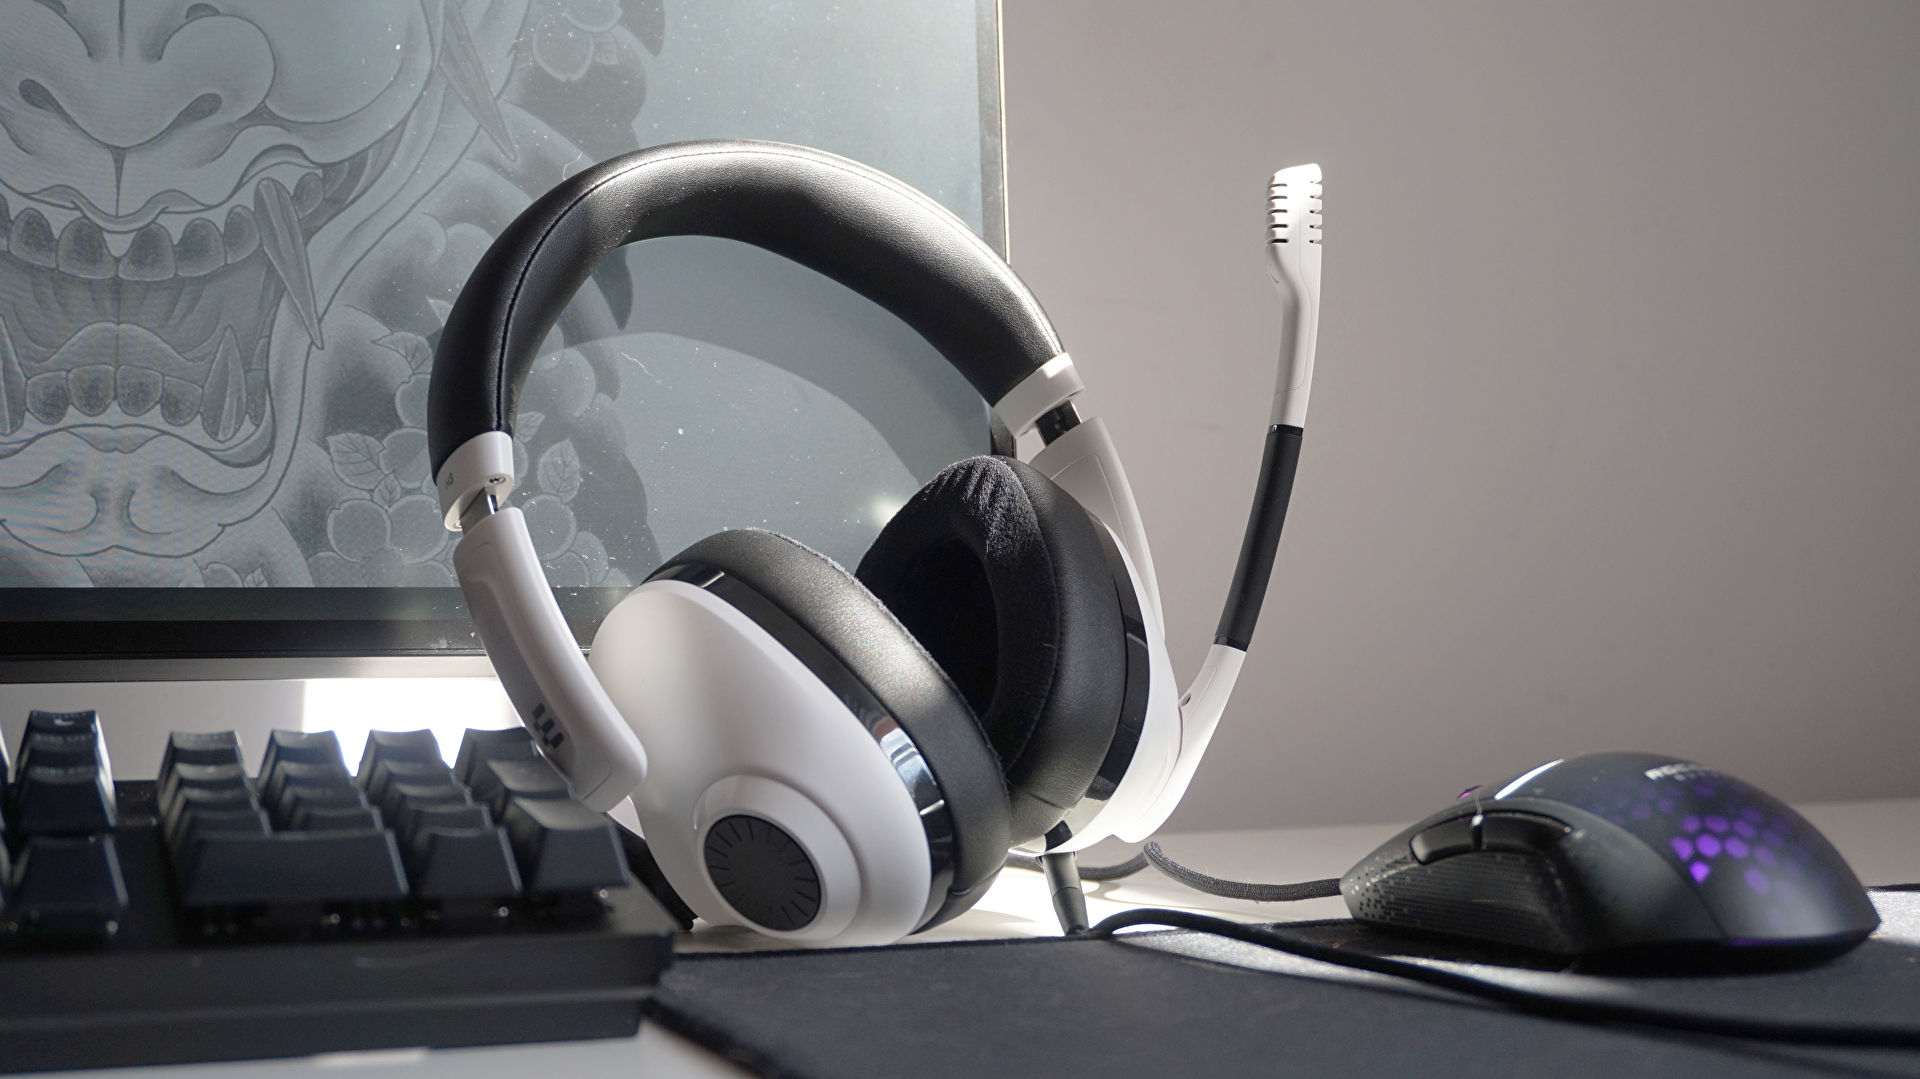 The EPOS H3 is a worthy successor to Sennheiser's old GSP 300 headset